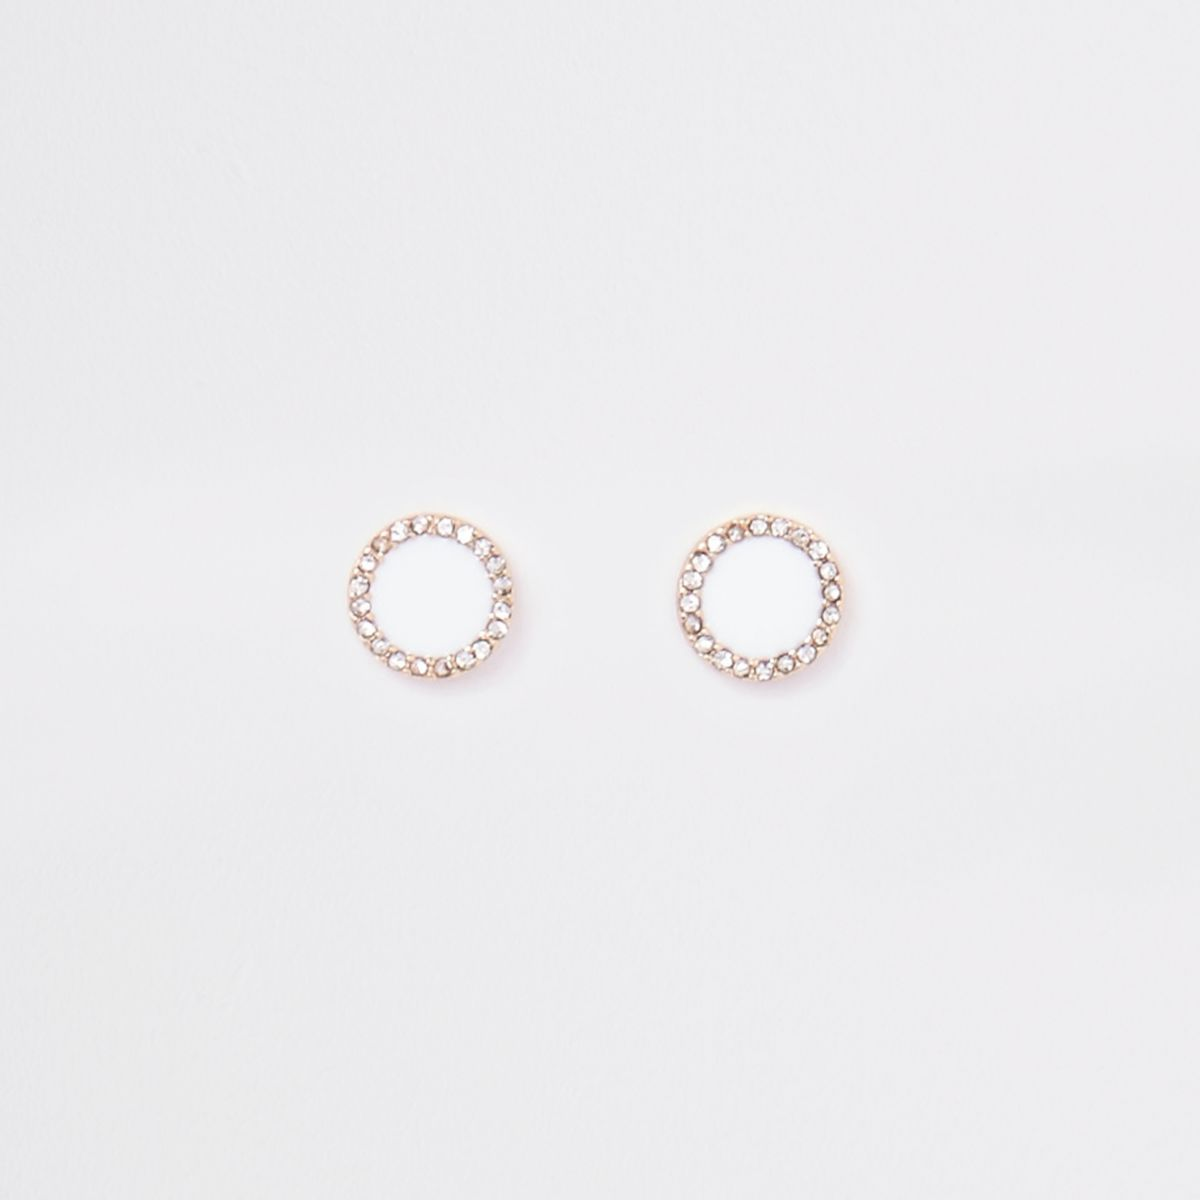 White gold tone enamel circle stud earrings